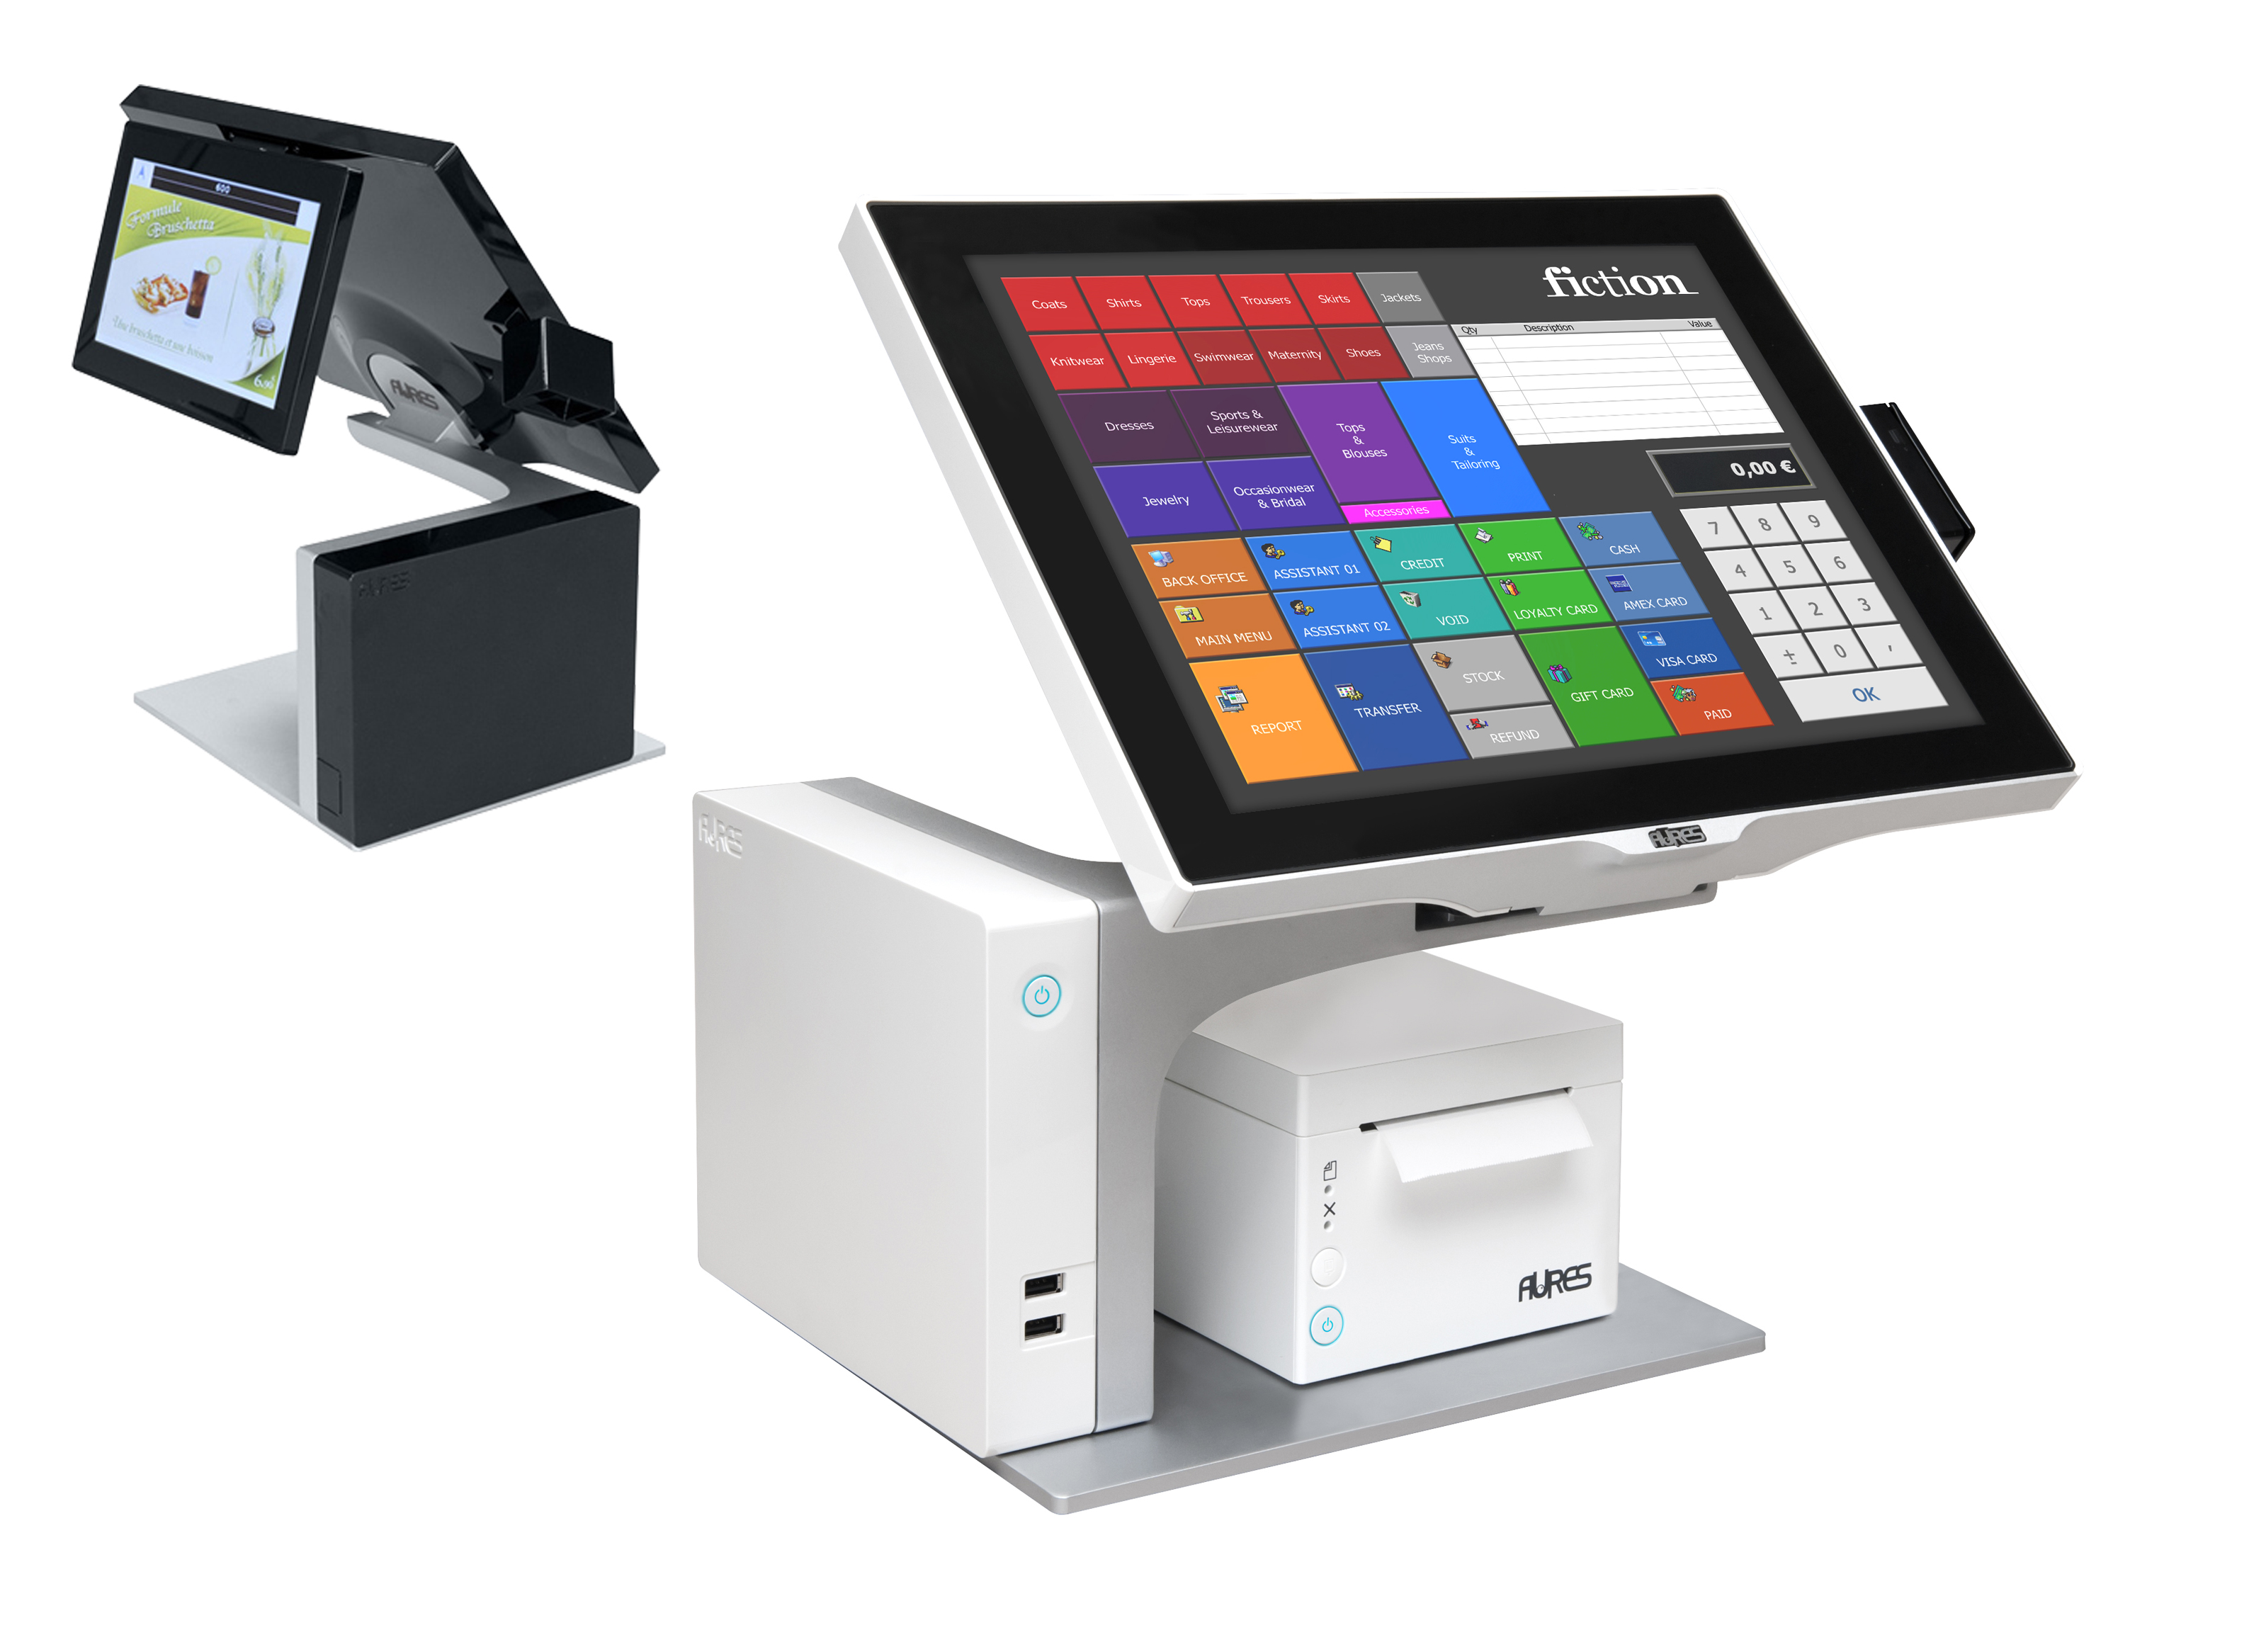 Aures Sango EPOS terminals in black and white